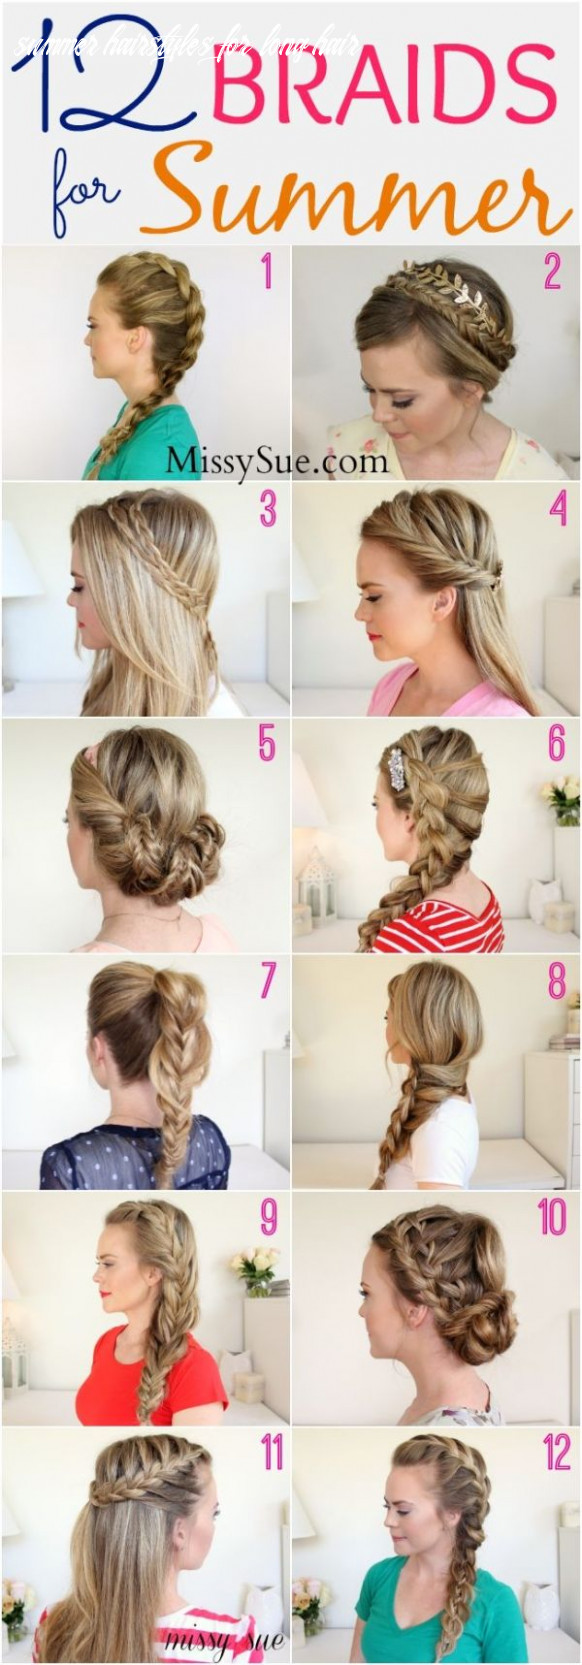 12 braids for summer beat the heat and look cute with these